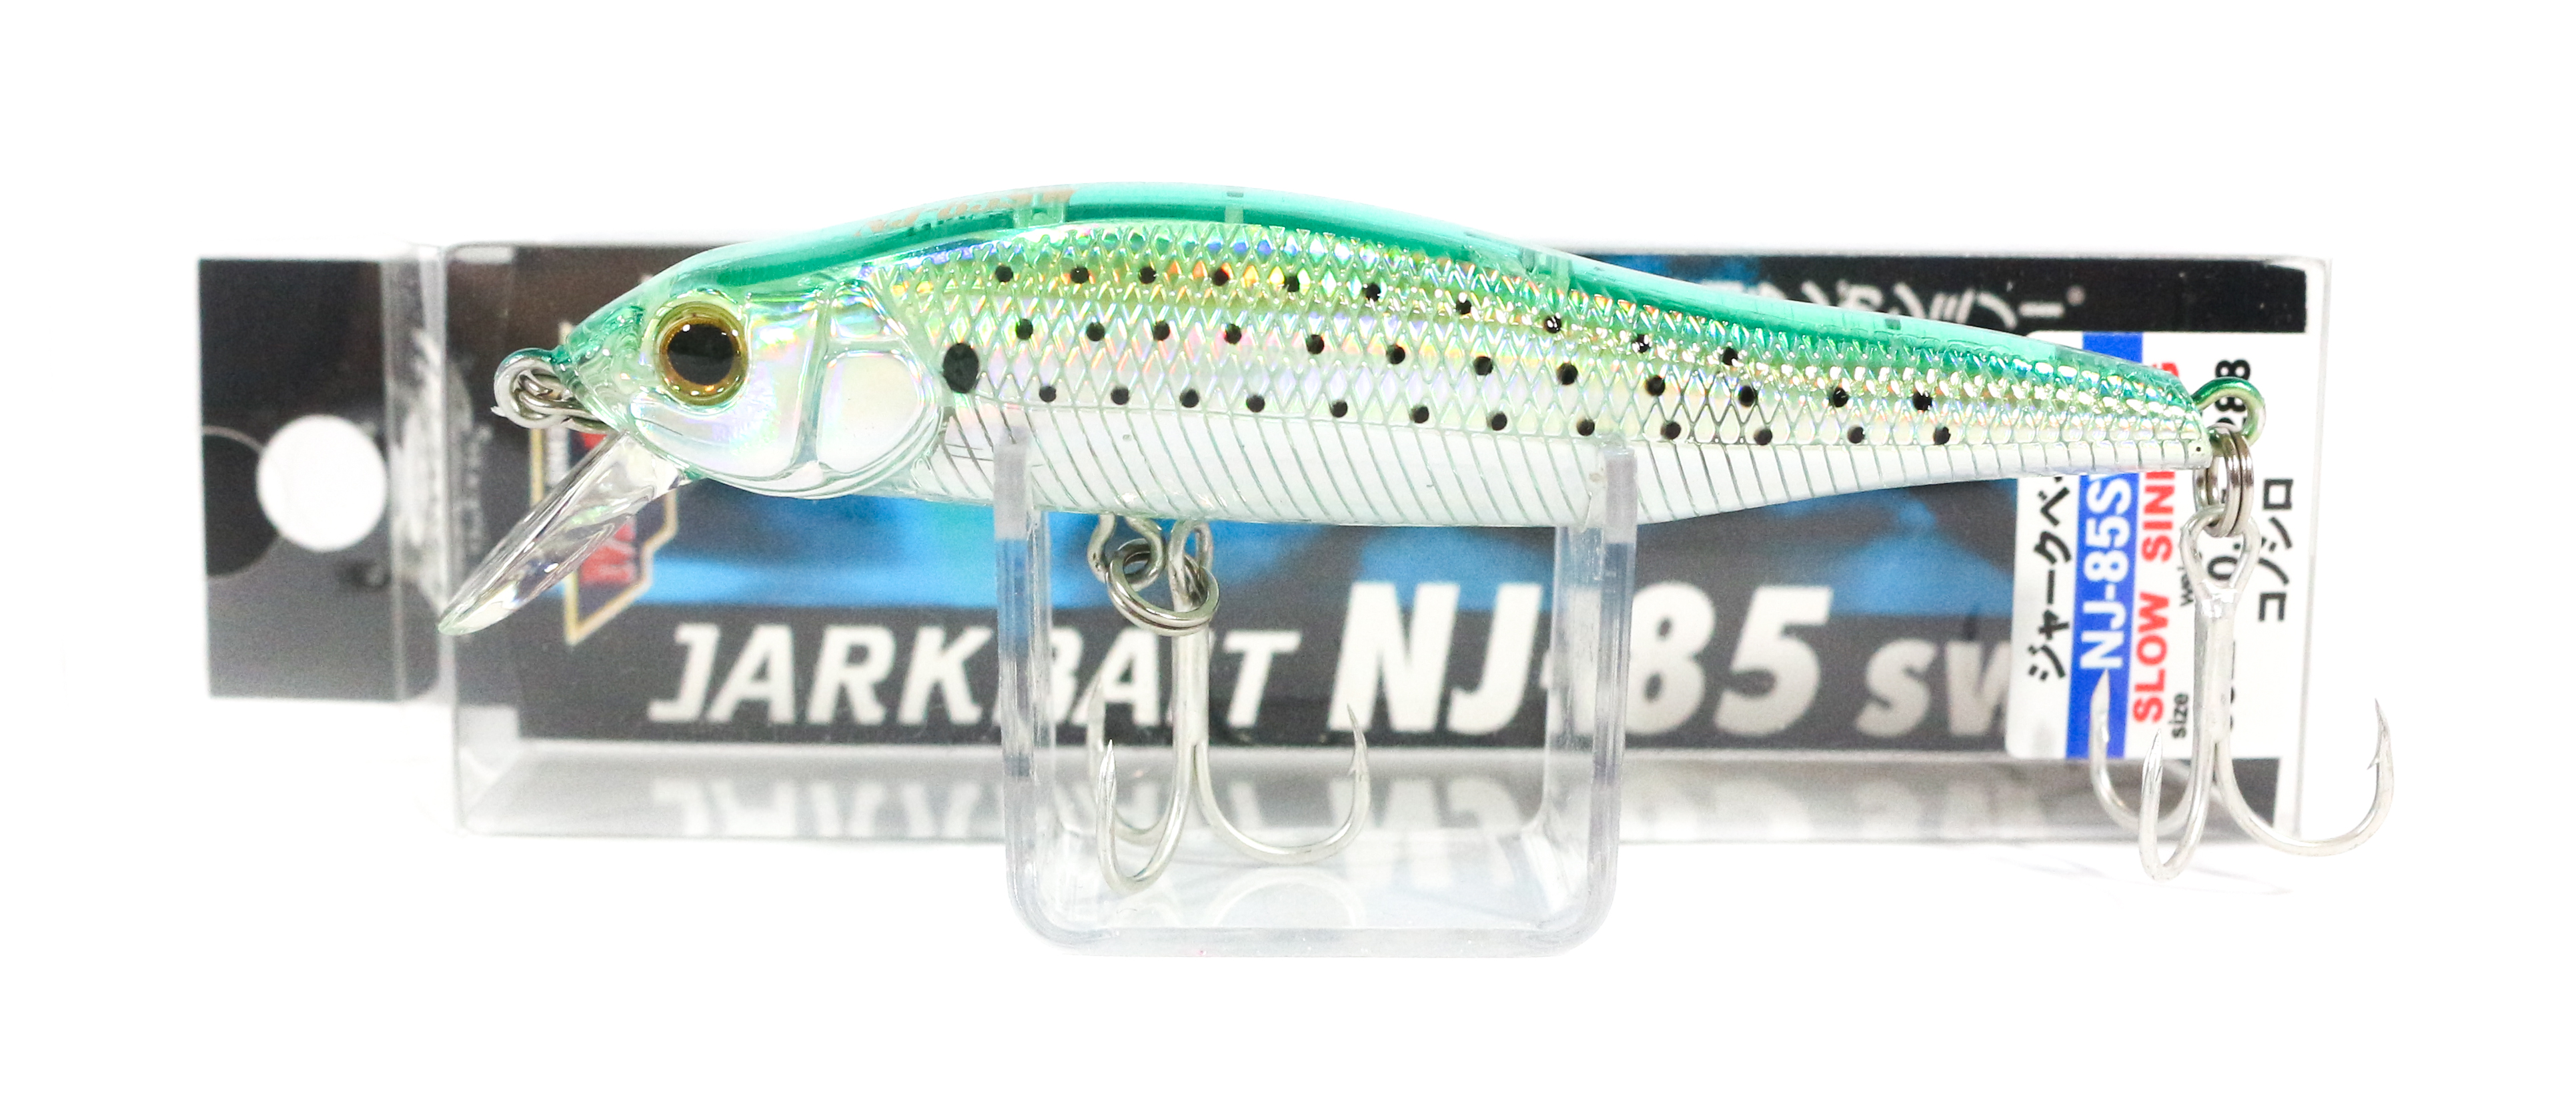 Bassday Jerkbait NJ 85 SW Sinking Minnow Lure 288 (3370)